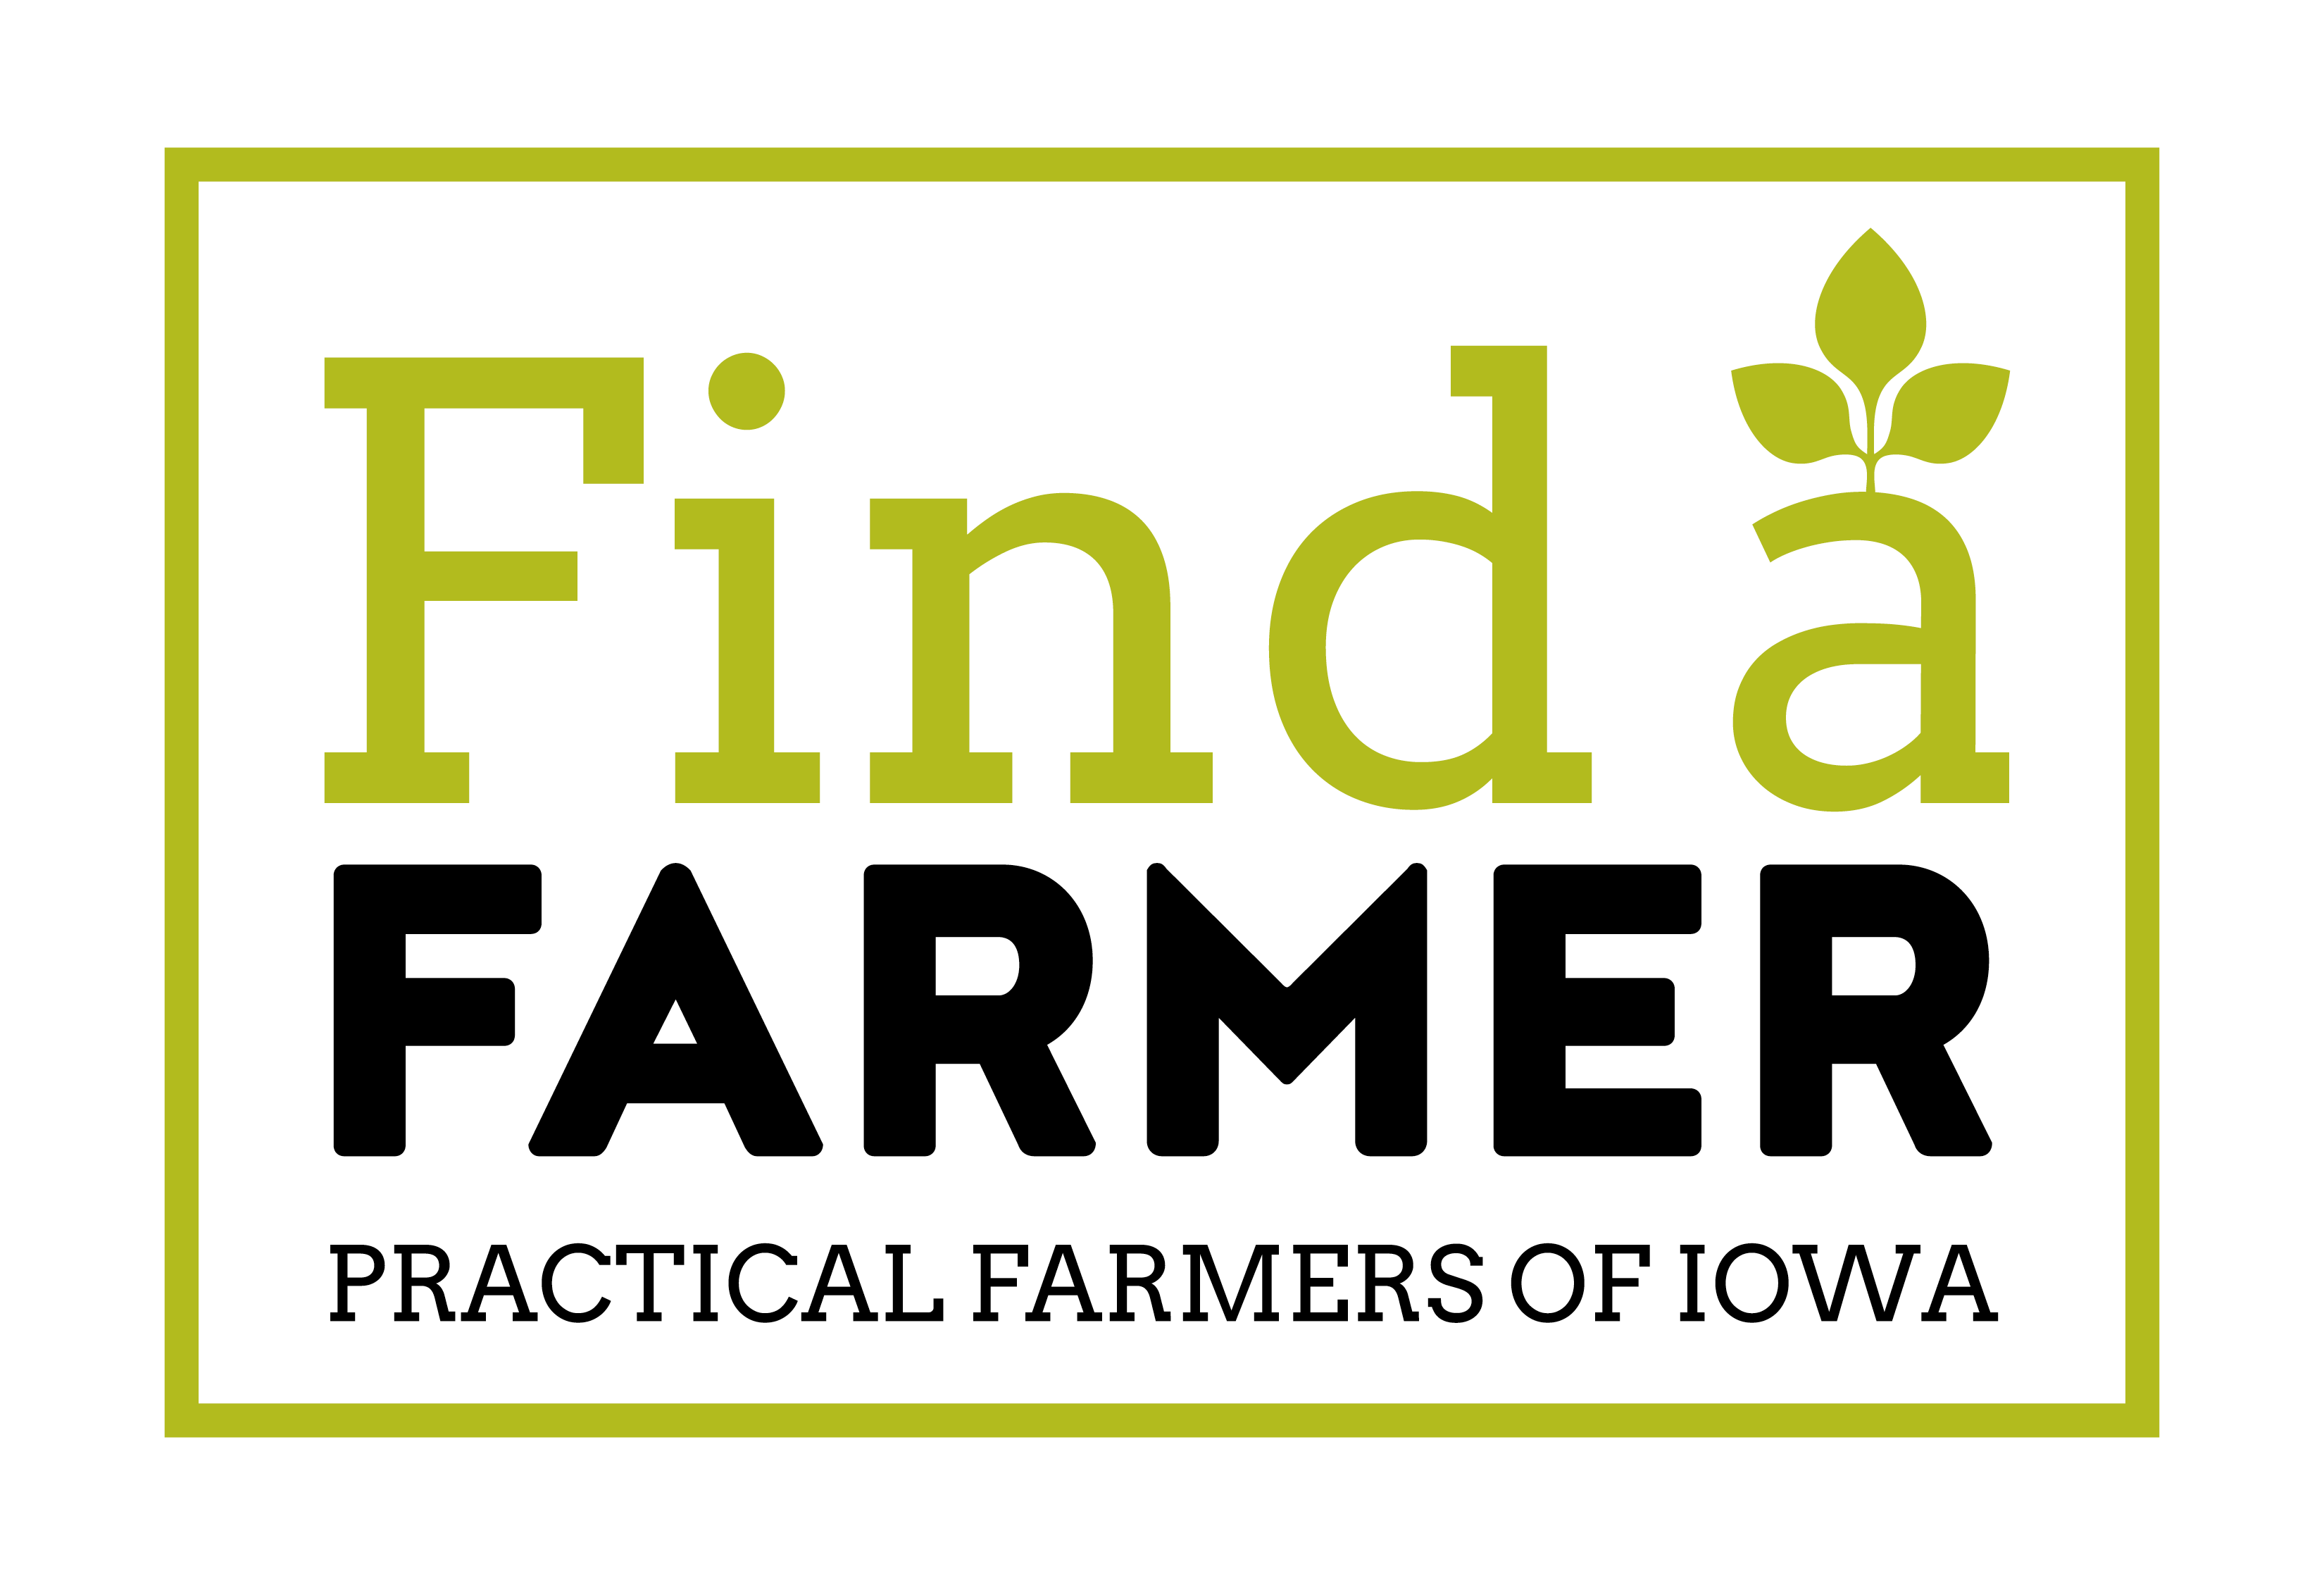 finding farmland website